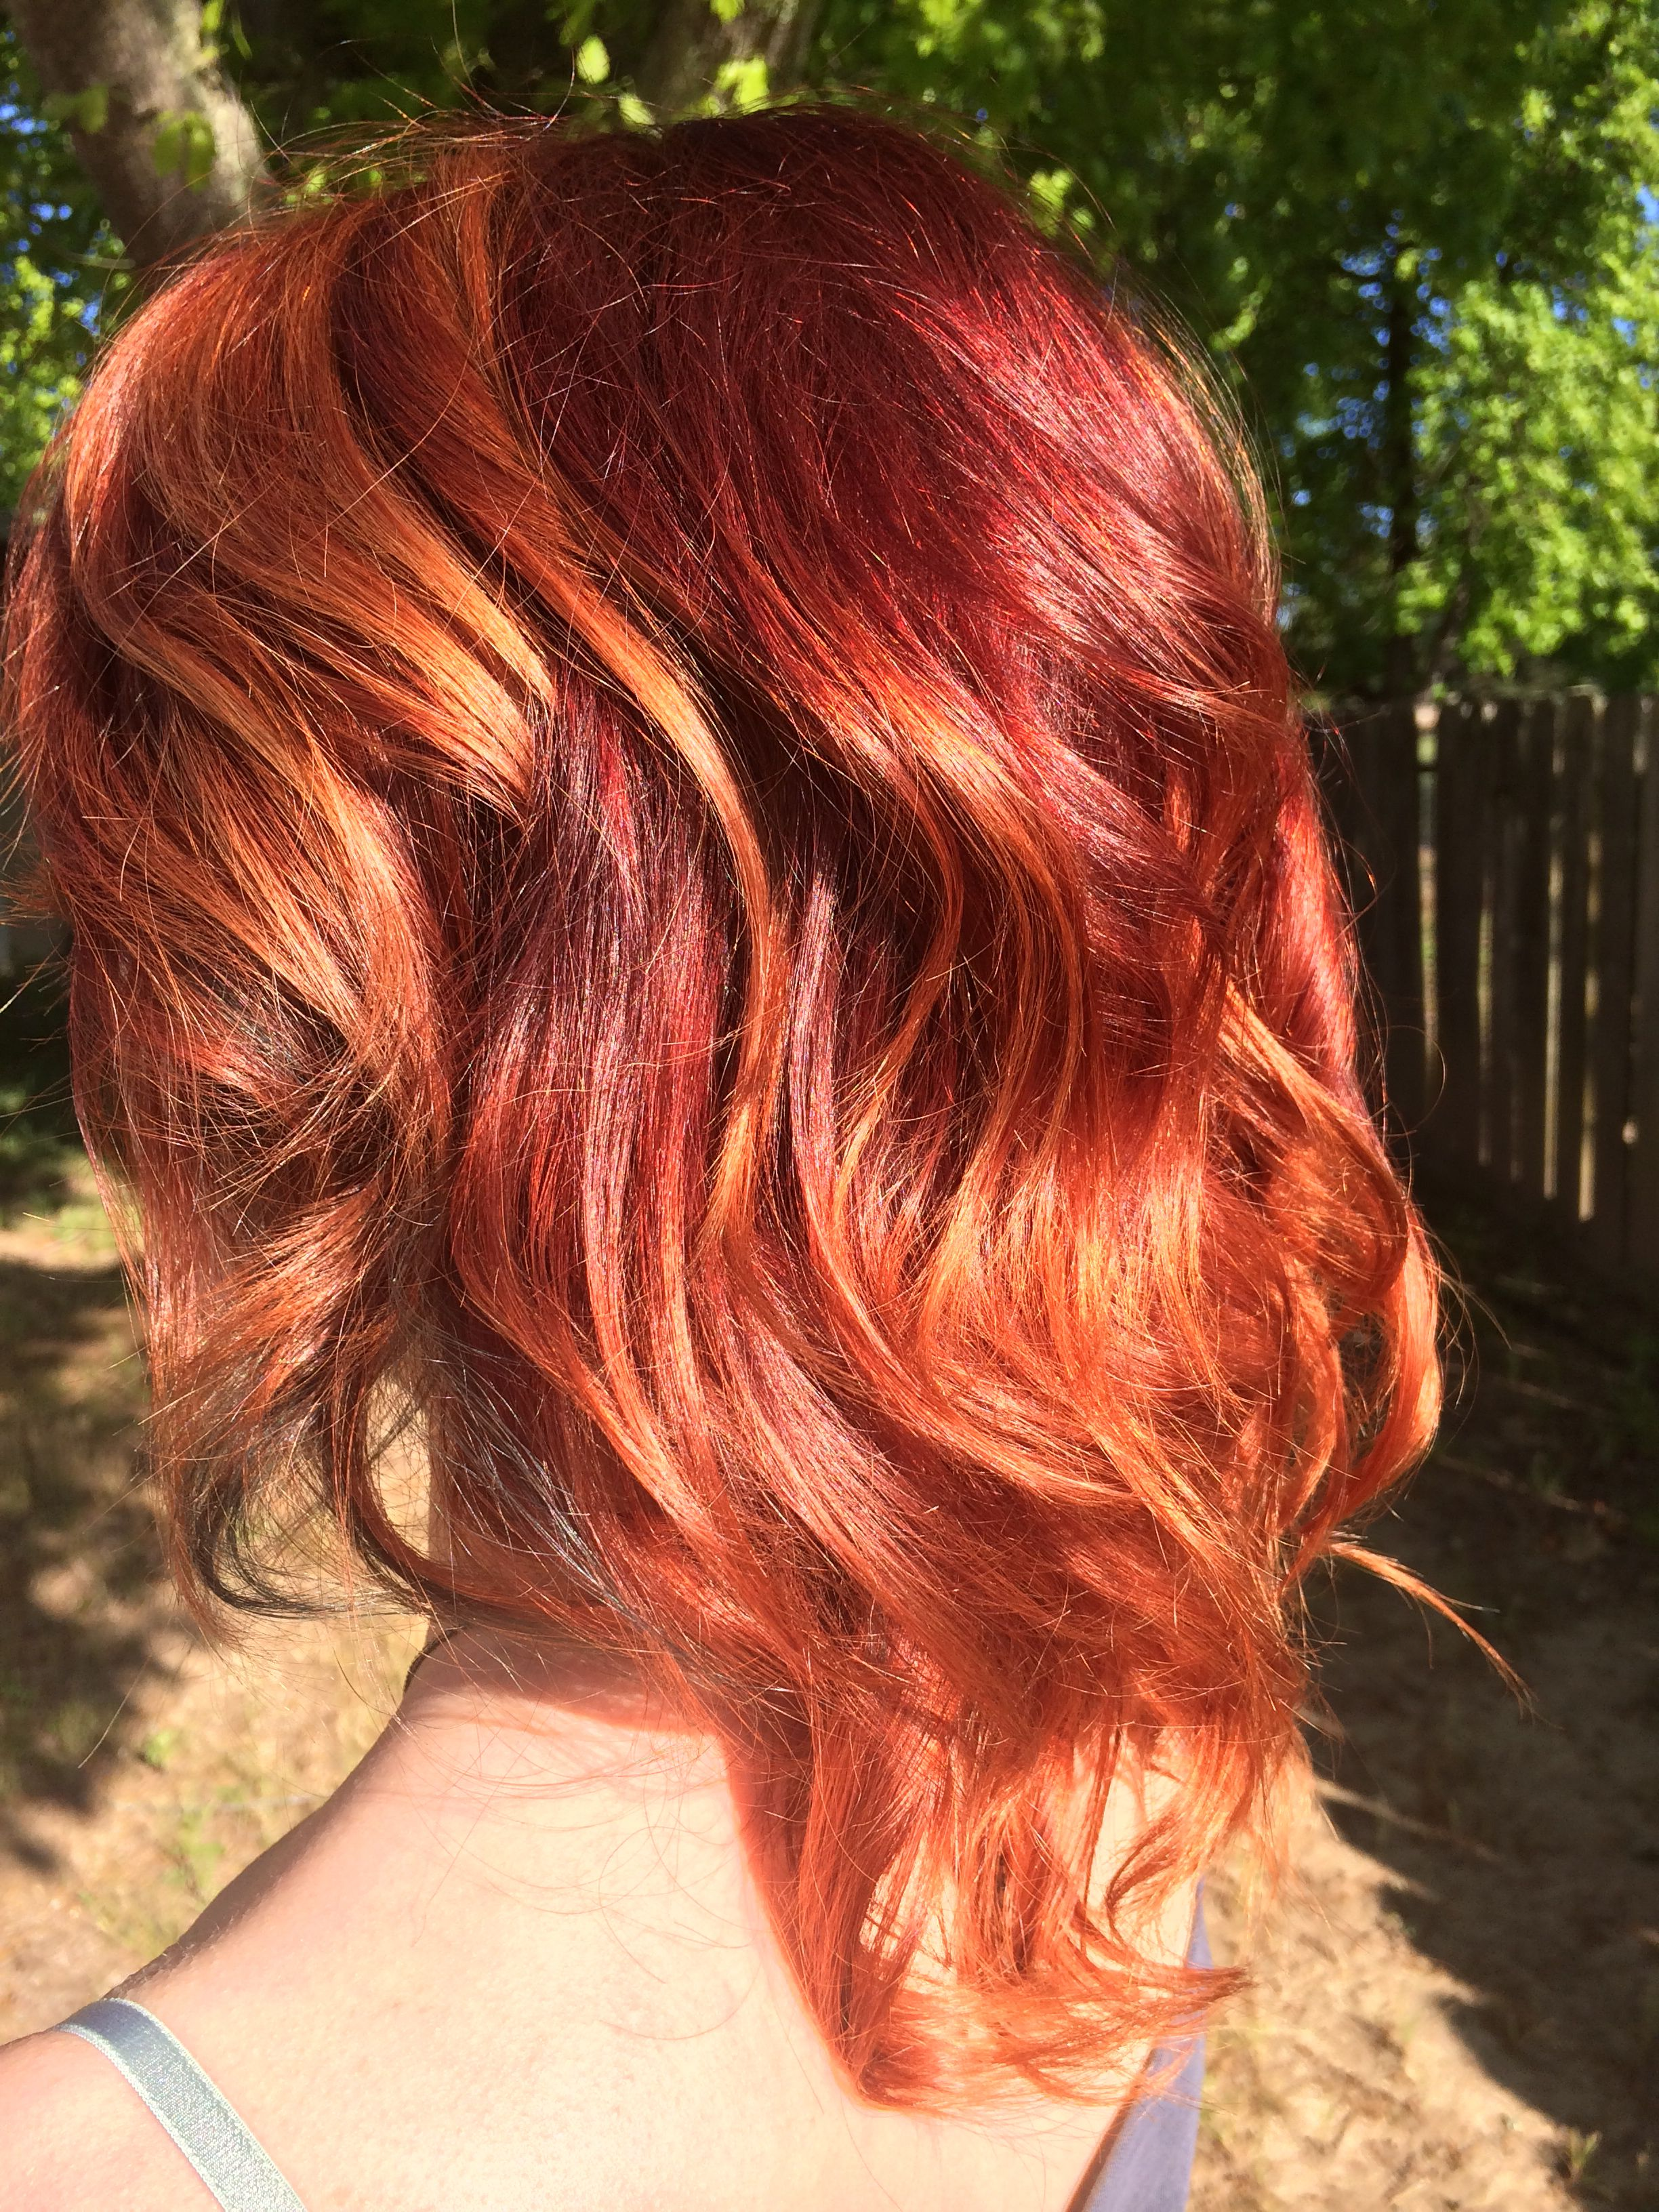 Fiery Red To Copper Balayage Ombr 233 On Short To Medium